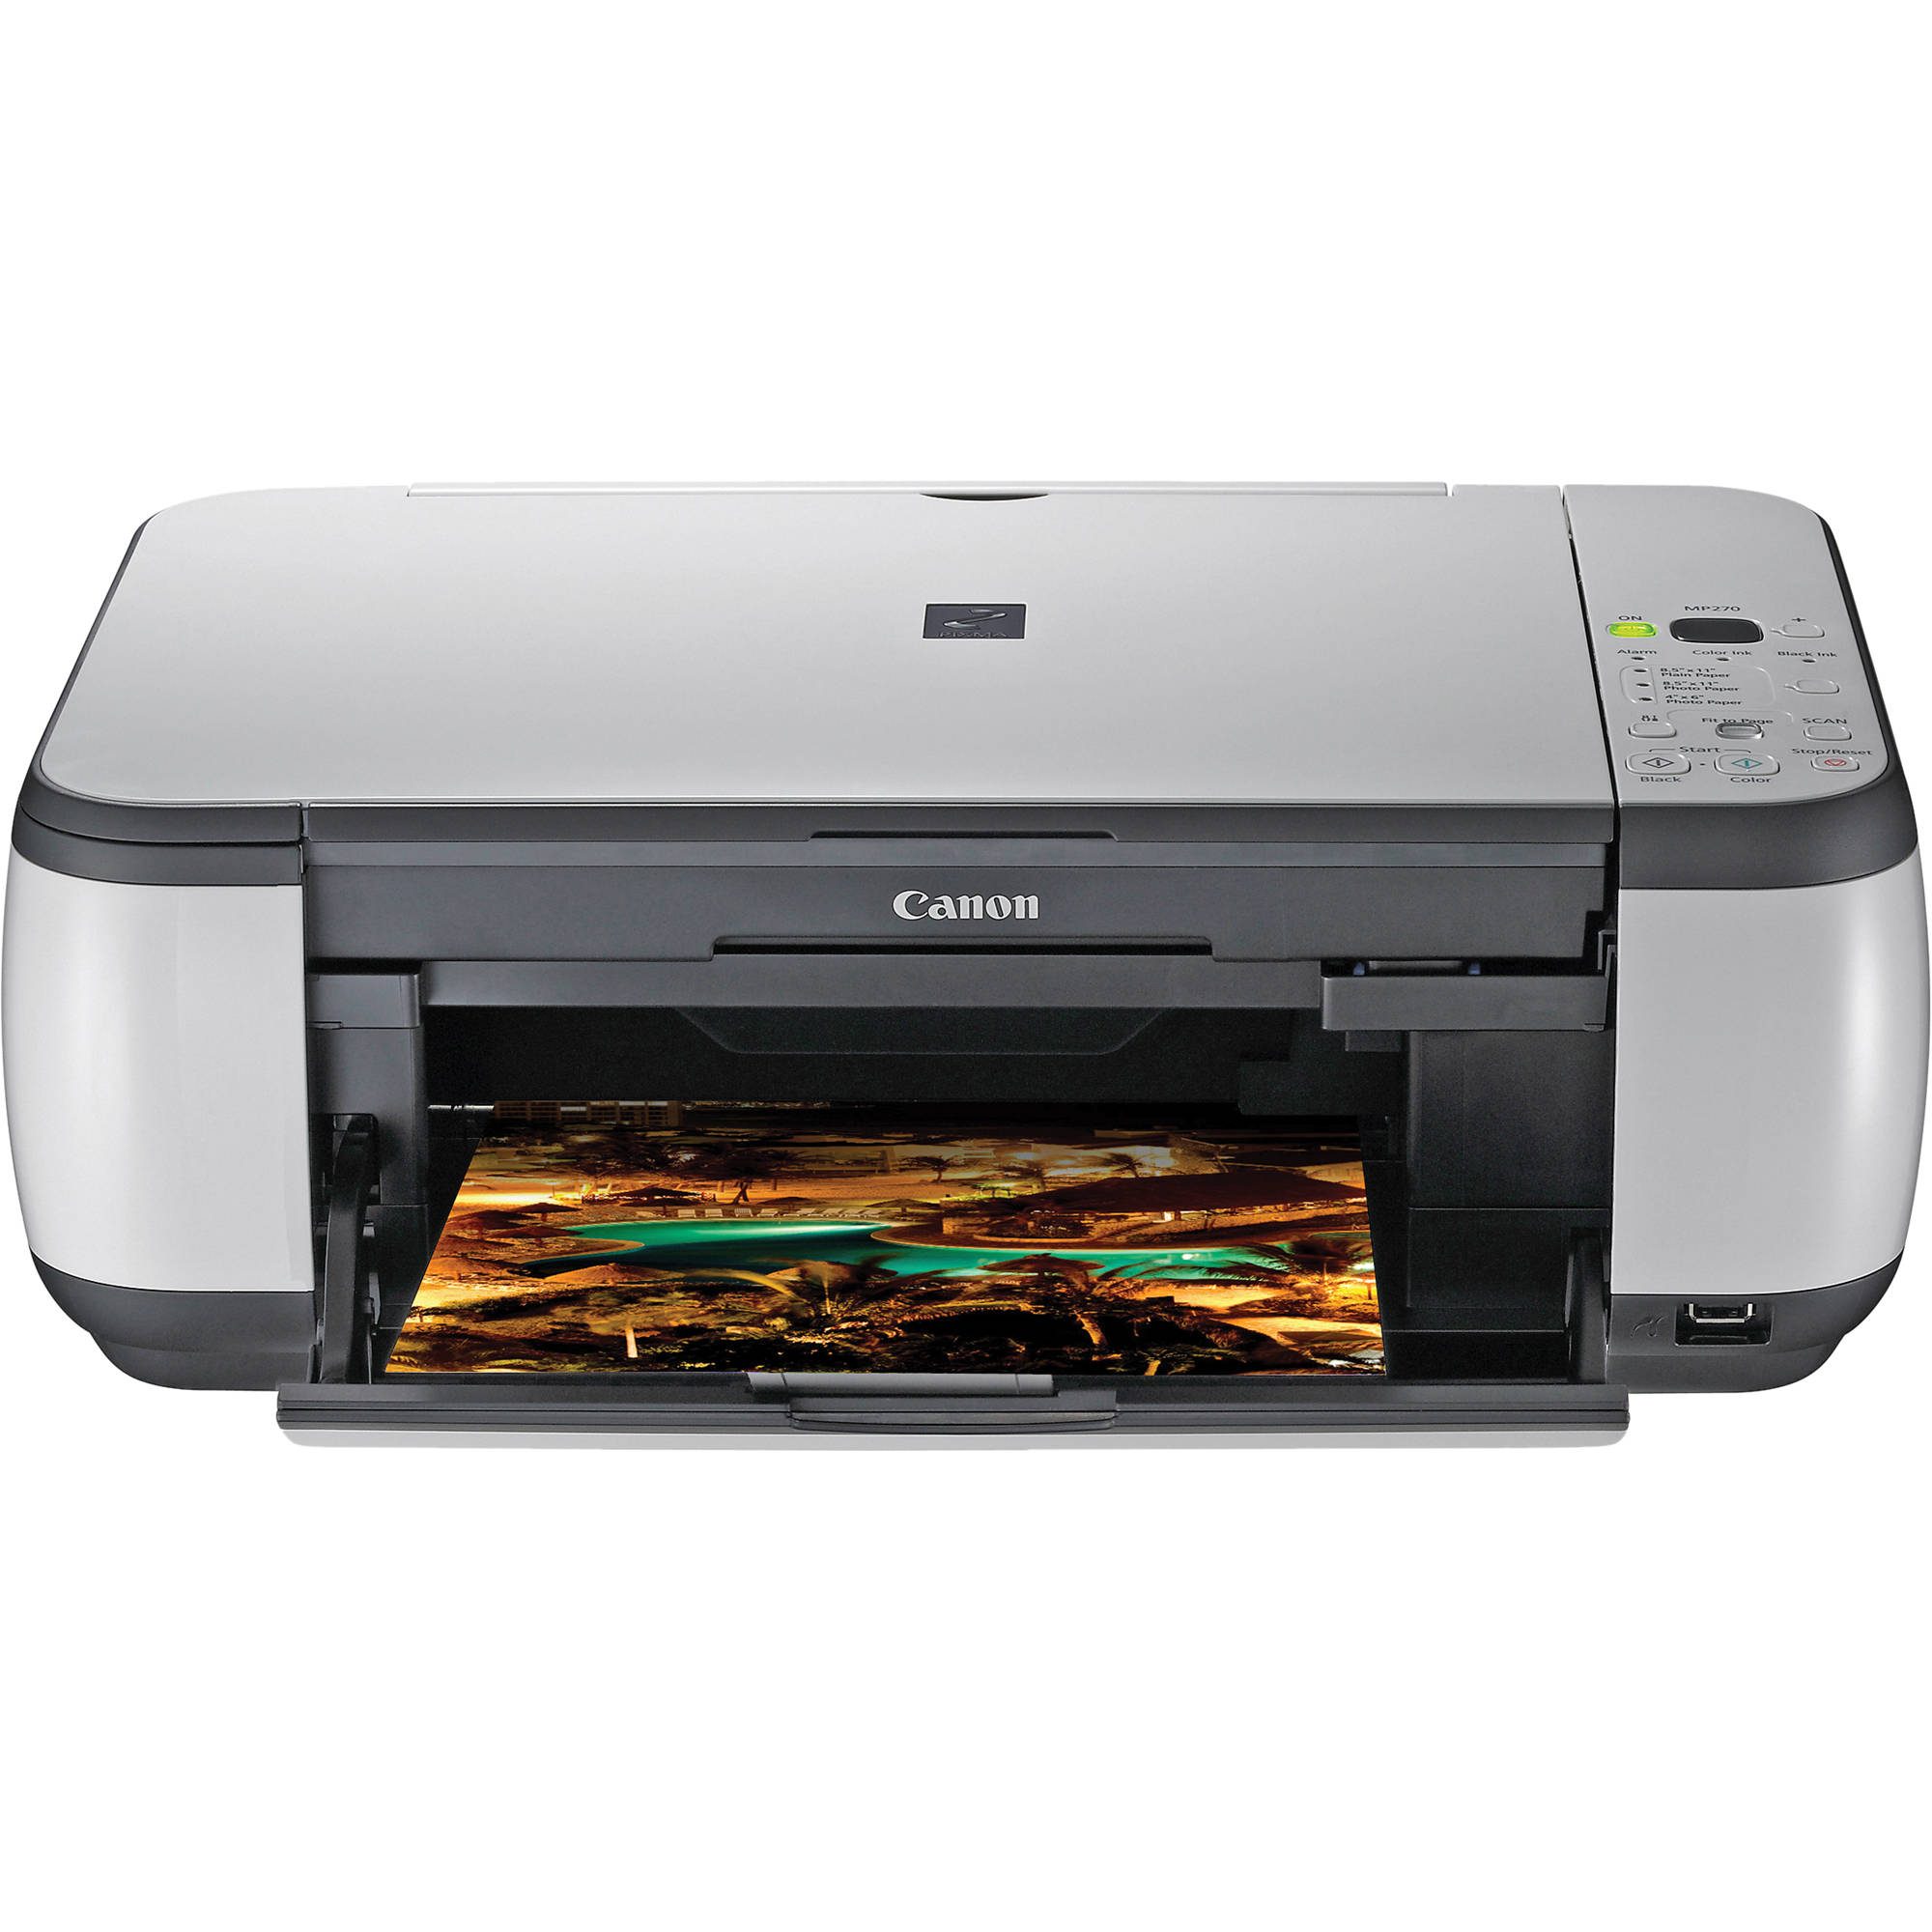 canon pixma mp270 all in one photo printer 3744b002 b h photo. Black Bedroom Furniture Sets. Home Design Ideas